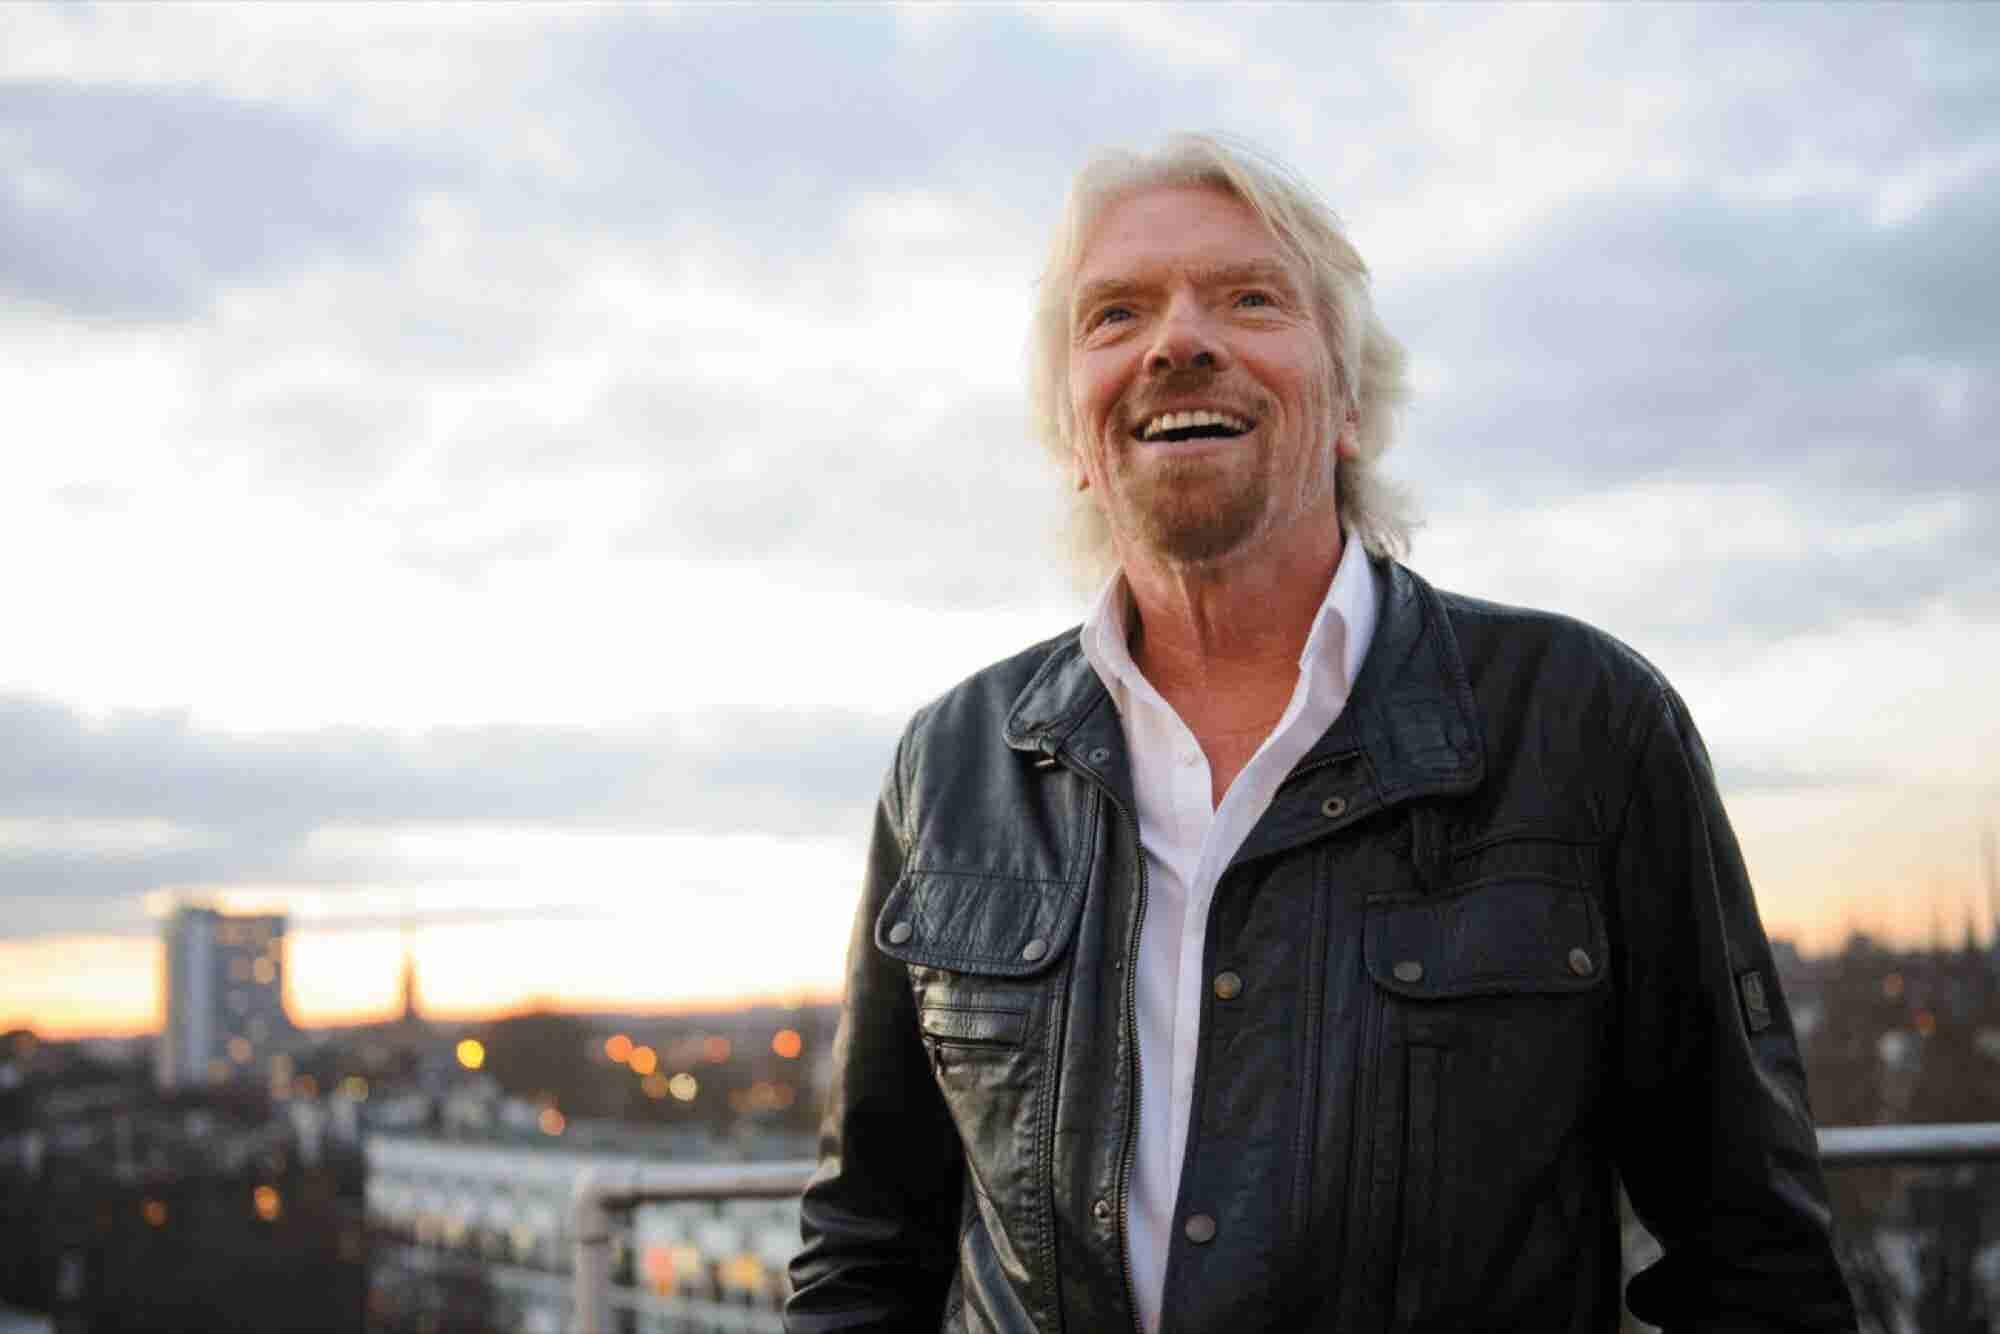 Richard Branson on the Importance of Taking Meaningful Risks